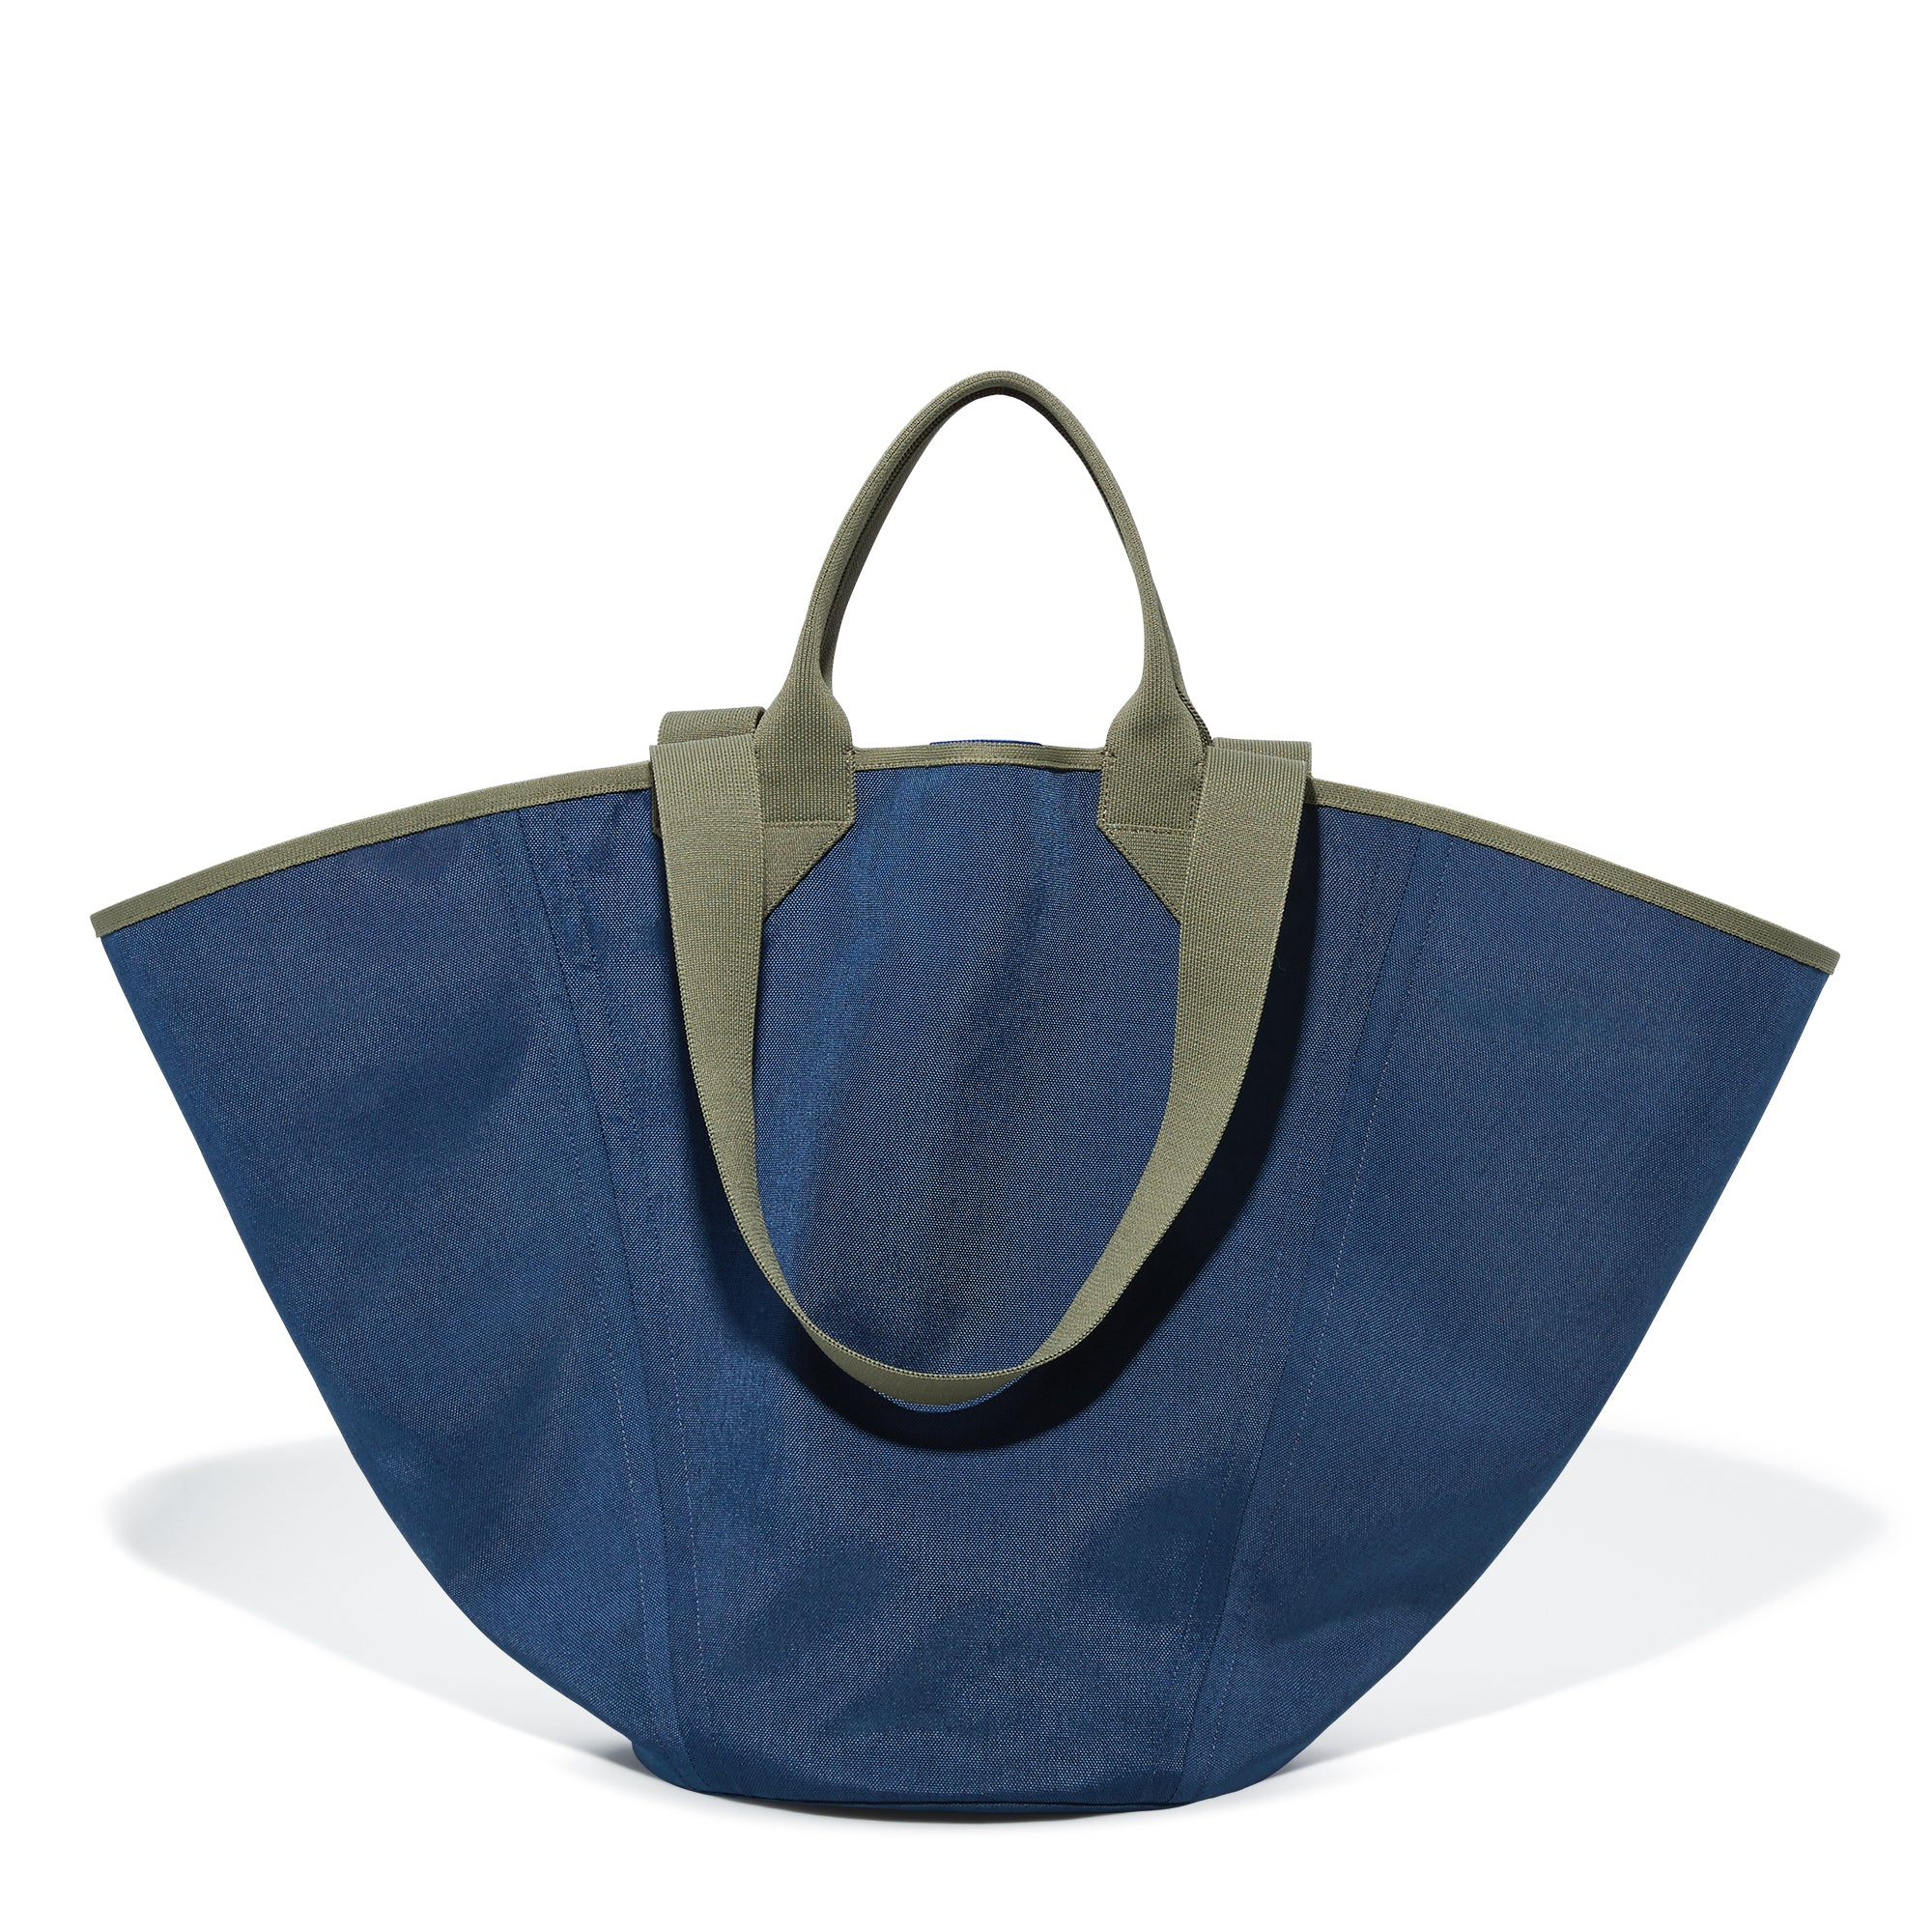 The Reversible Tote in Navy & Pink shown from the front.